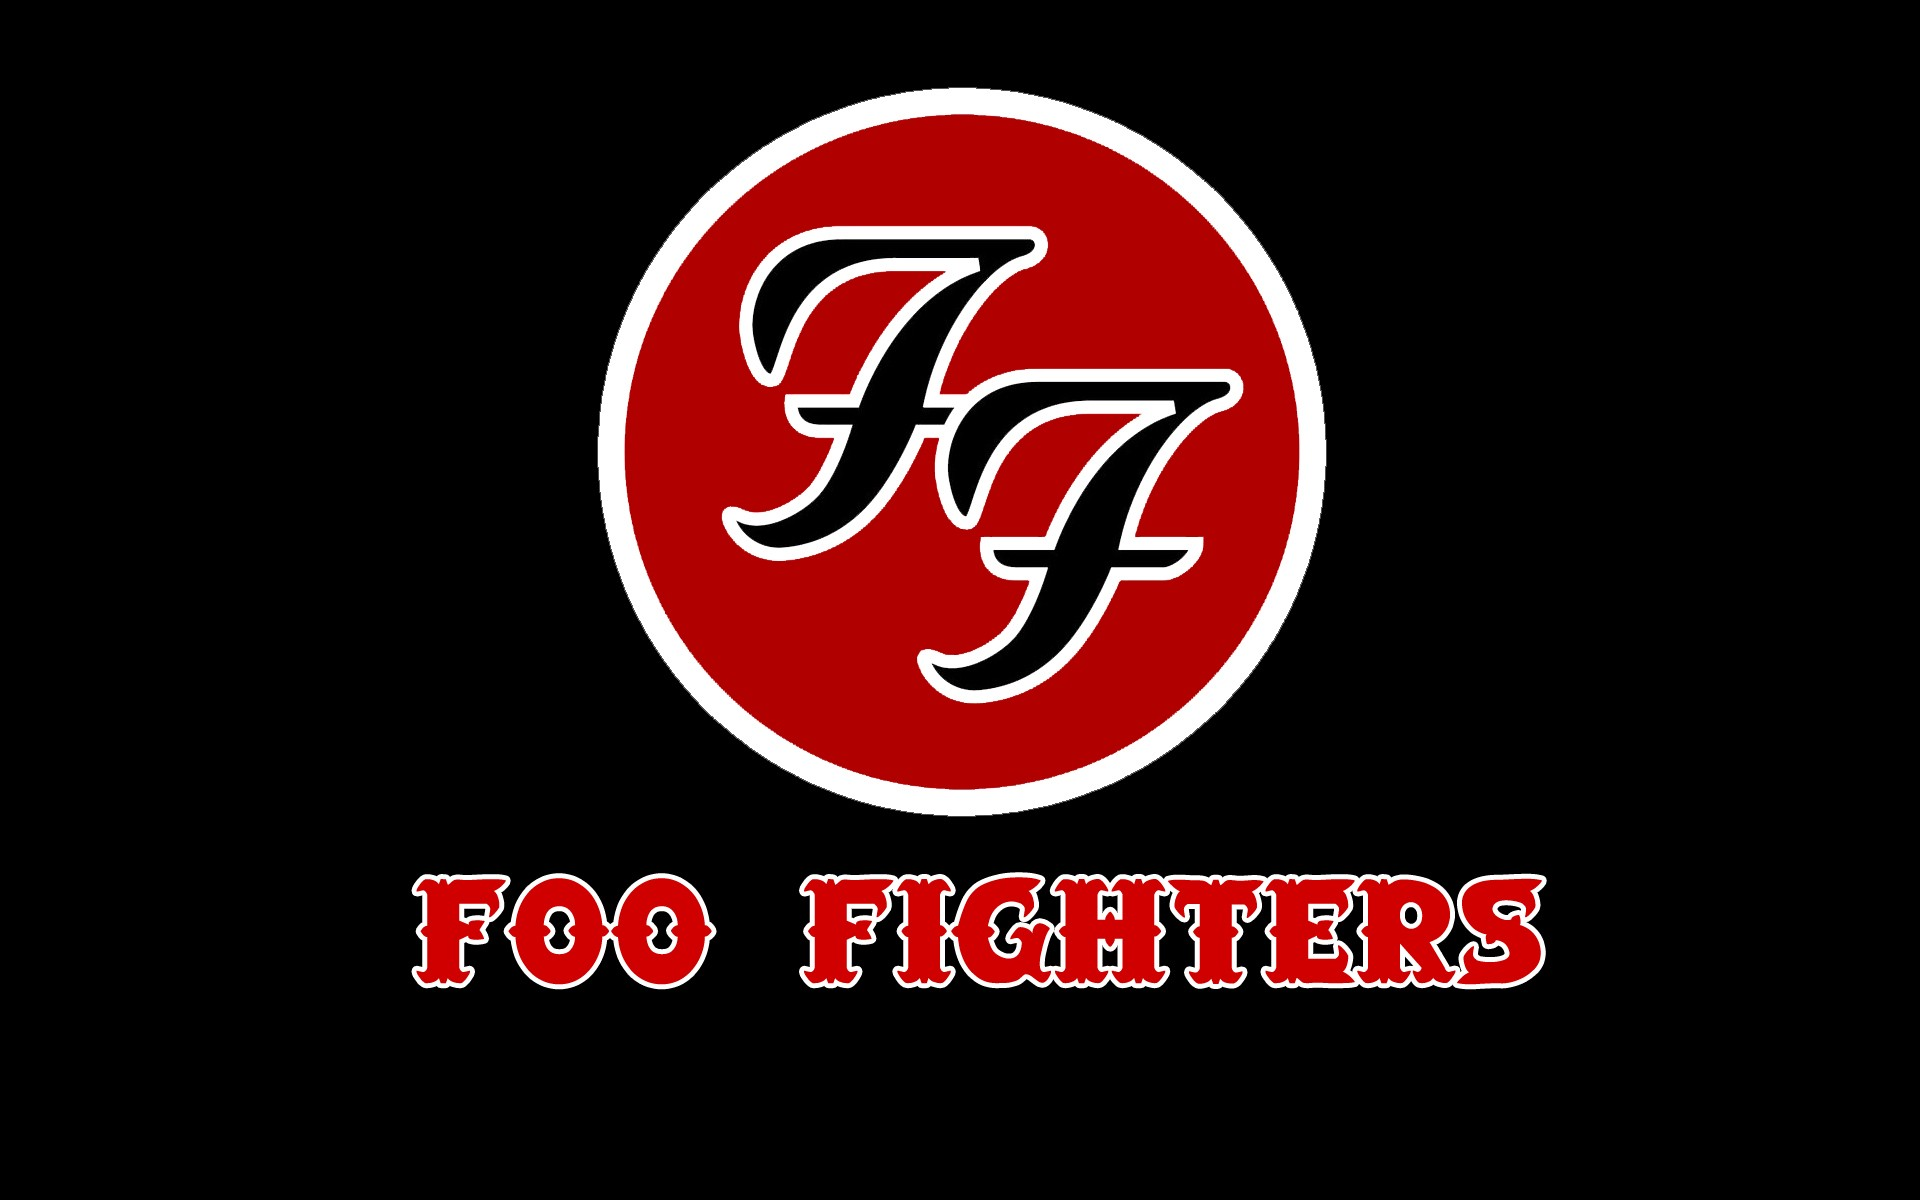 foo fighters full discography free download